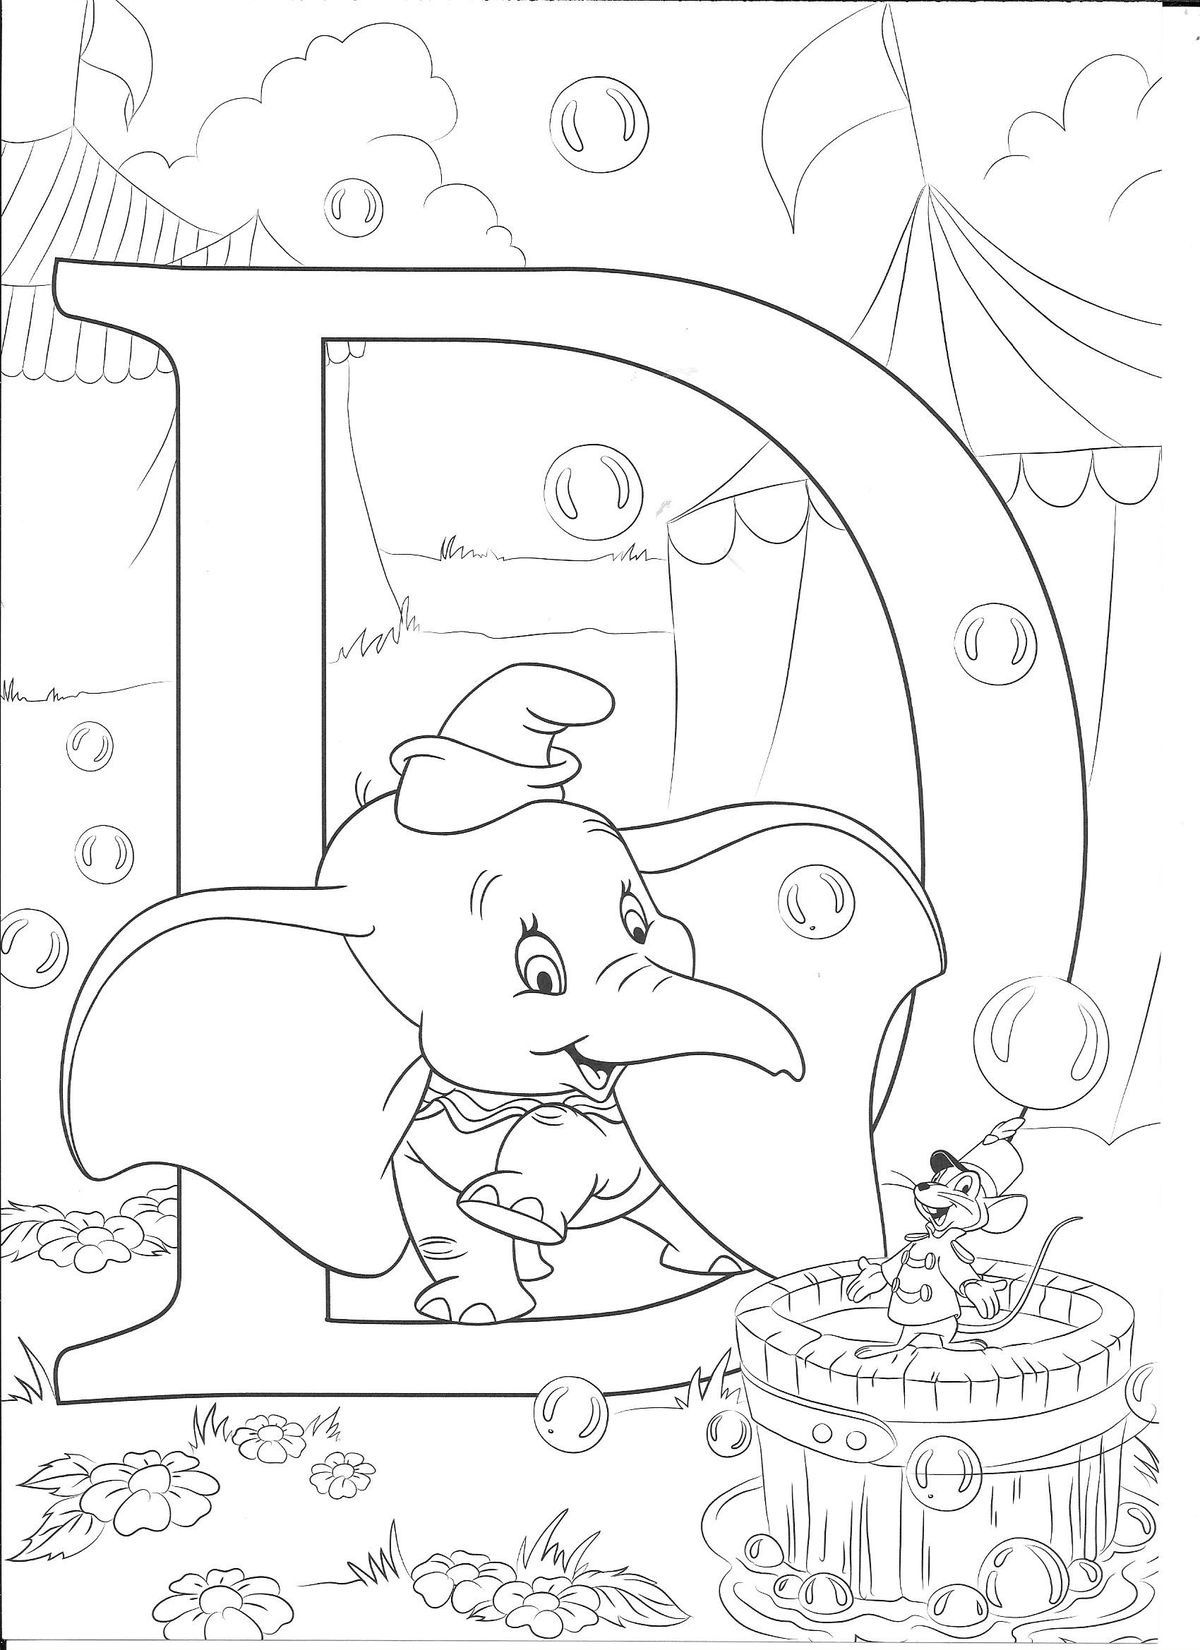 Pin By Mini On Alphabet Coloring Sheets Abc Coloring Pages Disney Coloring Sheets Disney Coloring Pages Printables